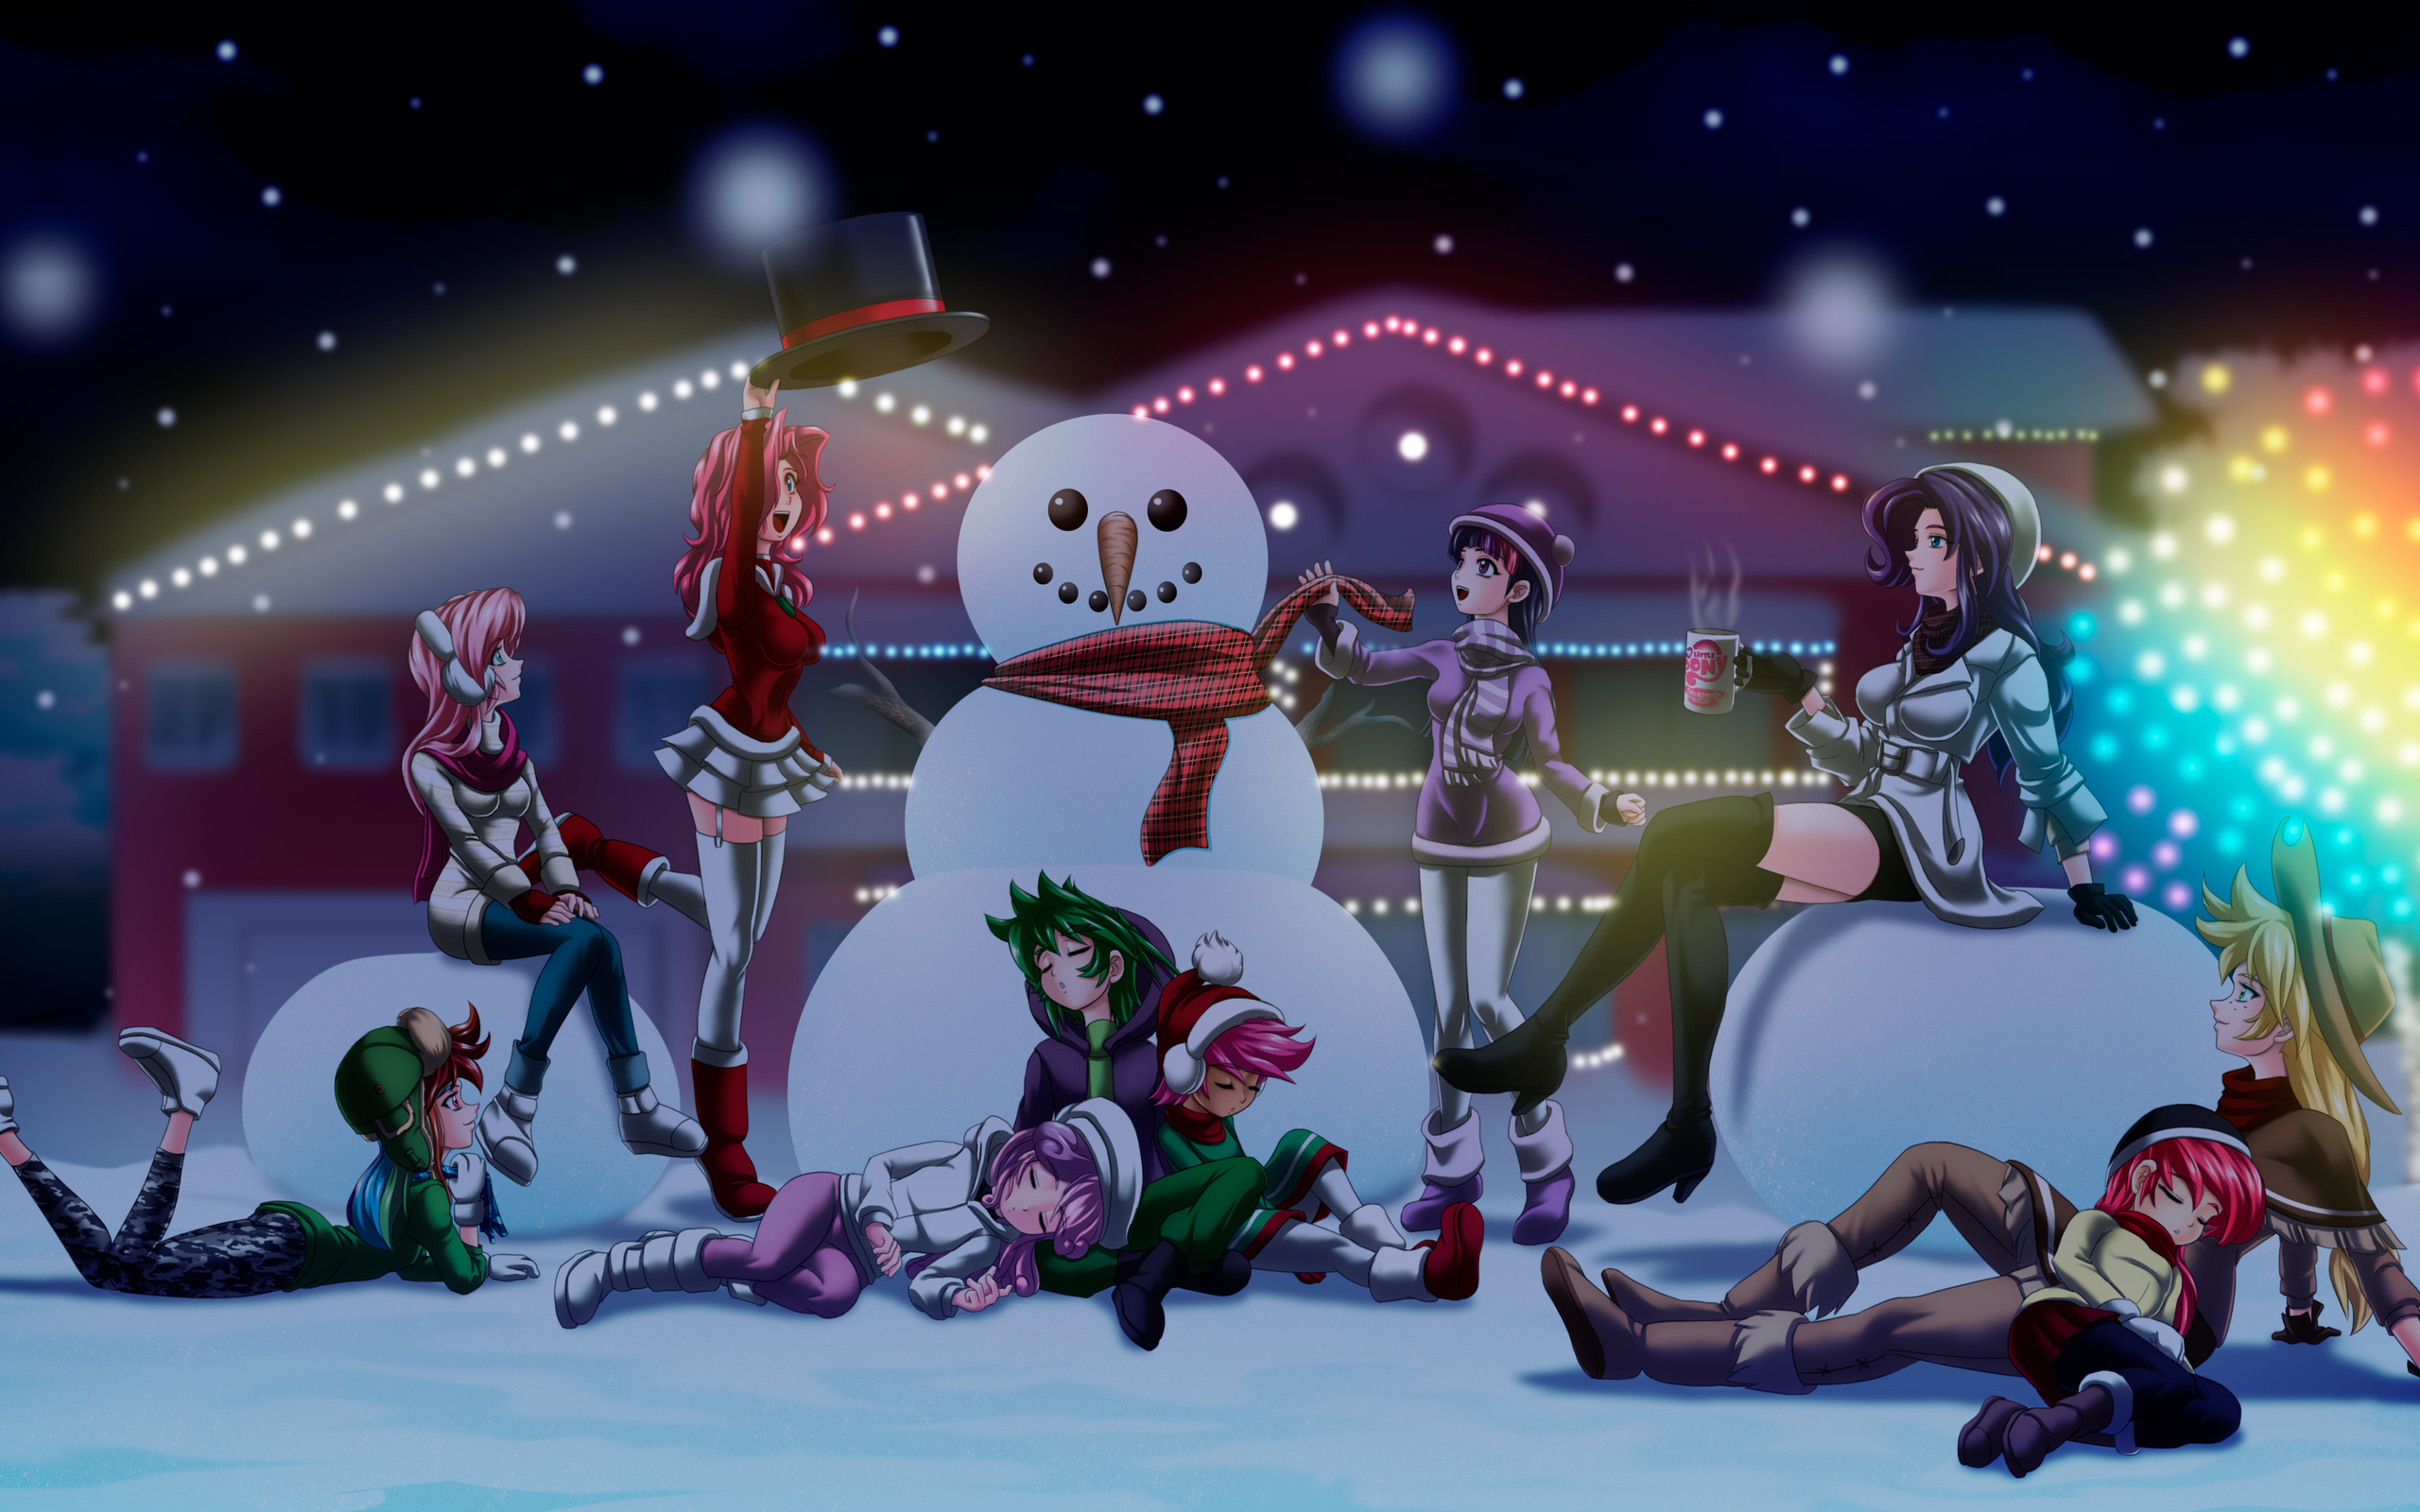 anime-girls-celebrating-christmas-4k-6w.jpg